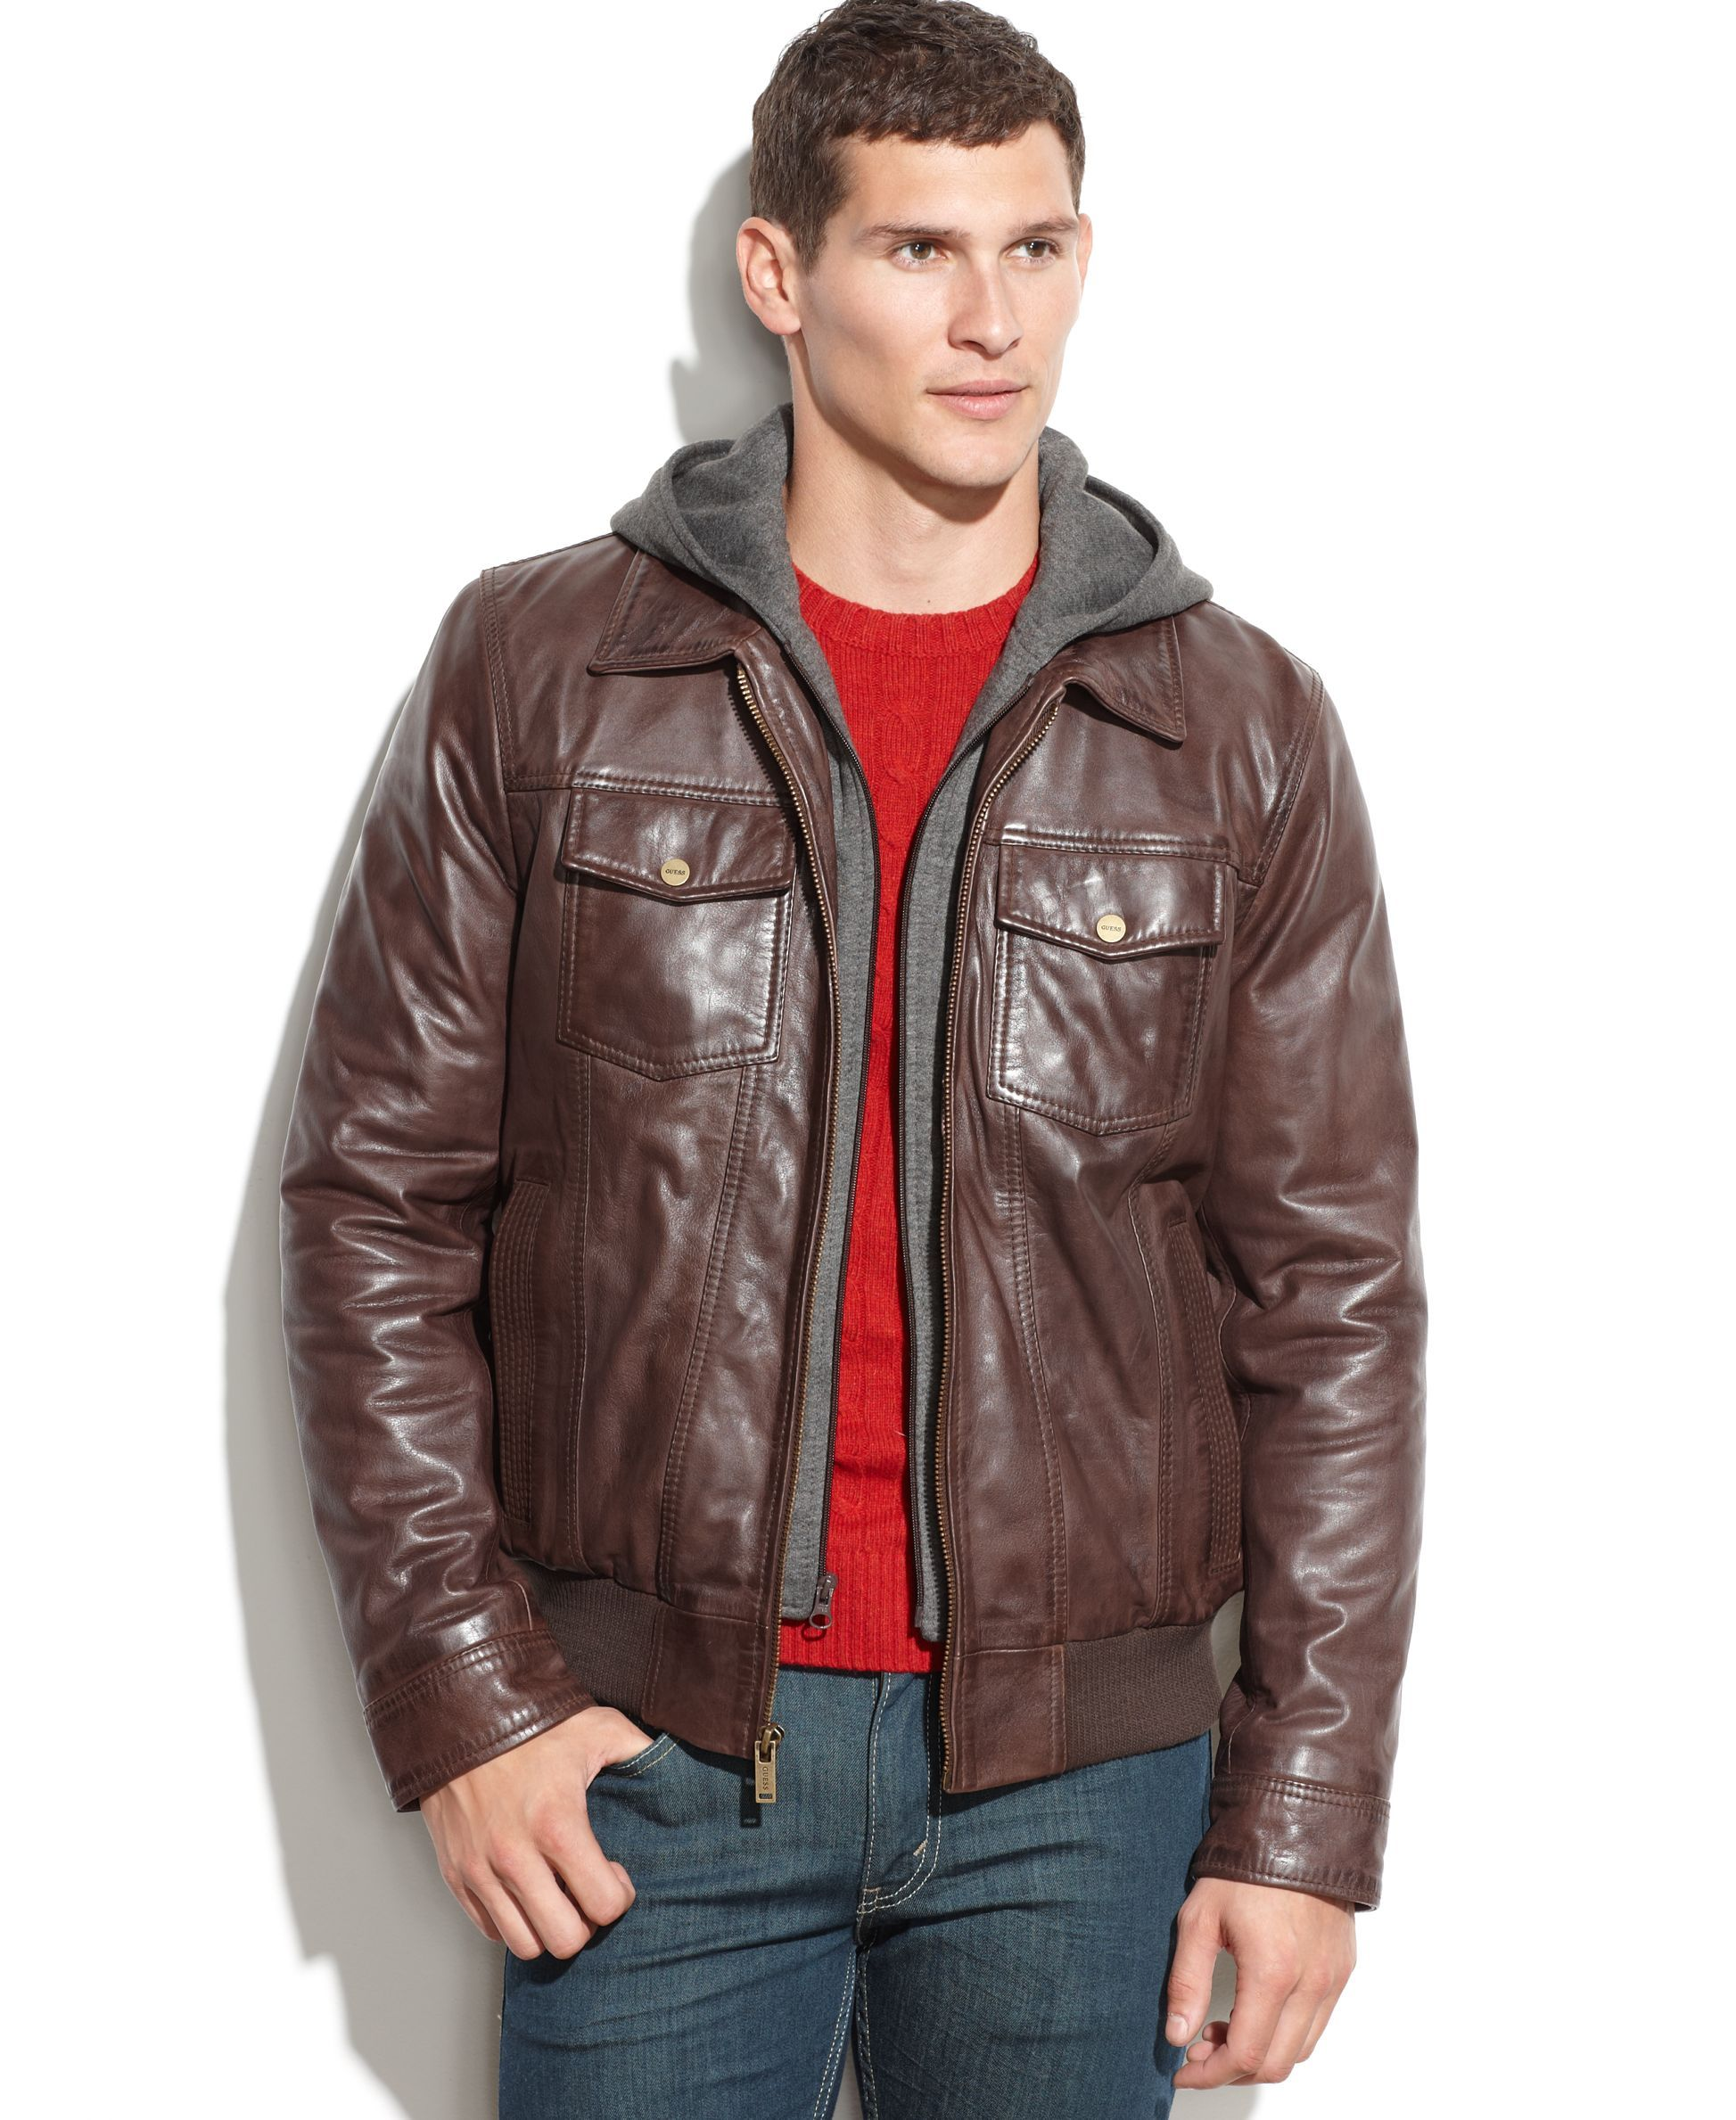 Guess Leather Jacket With Knit Hood Leather Jacket Men Brown Leather Bomber Jacket Leather Jackets Women [ 2378 x 1947 Pixel ]